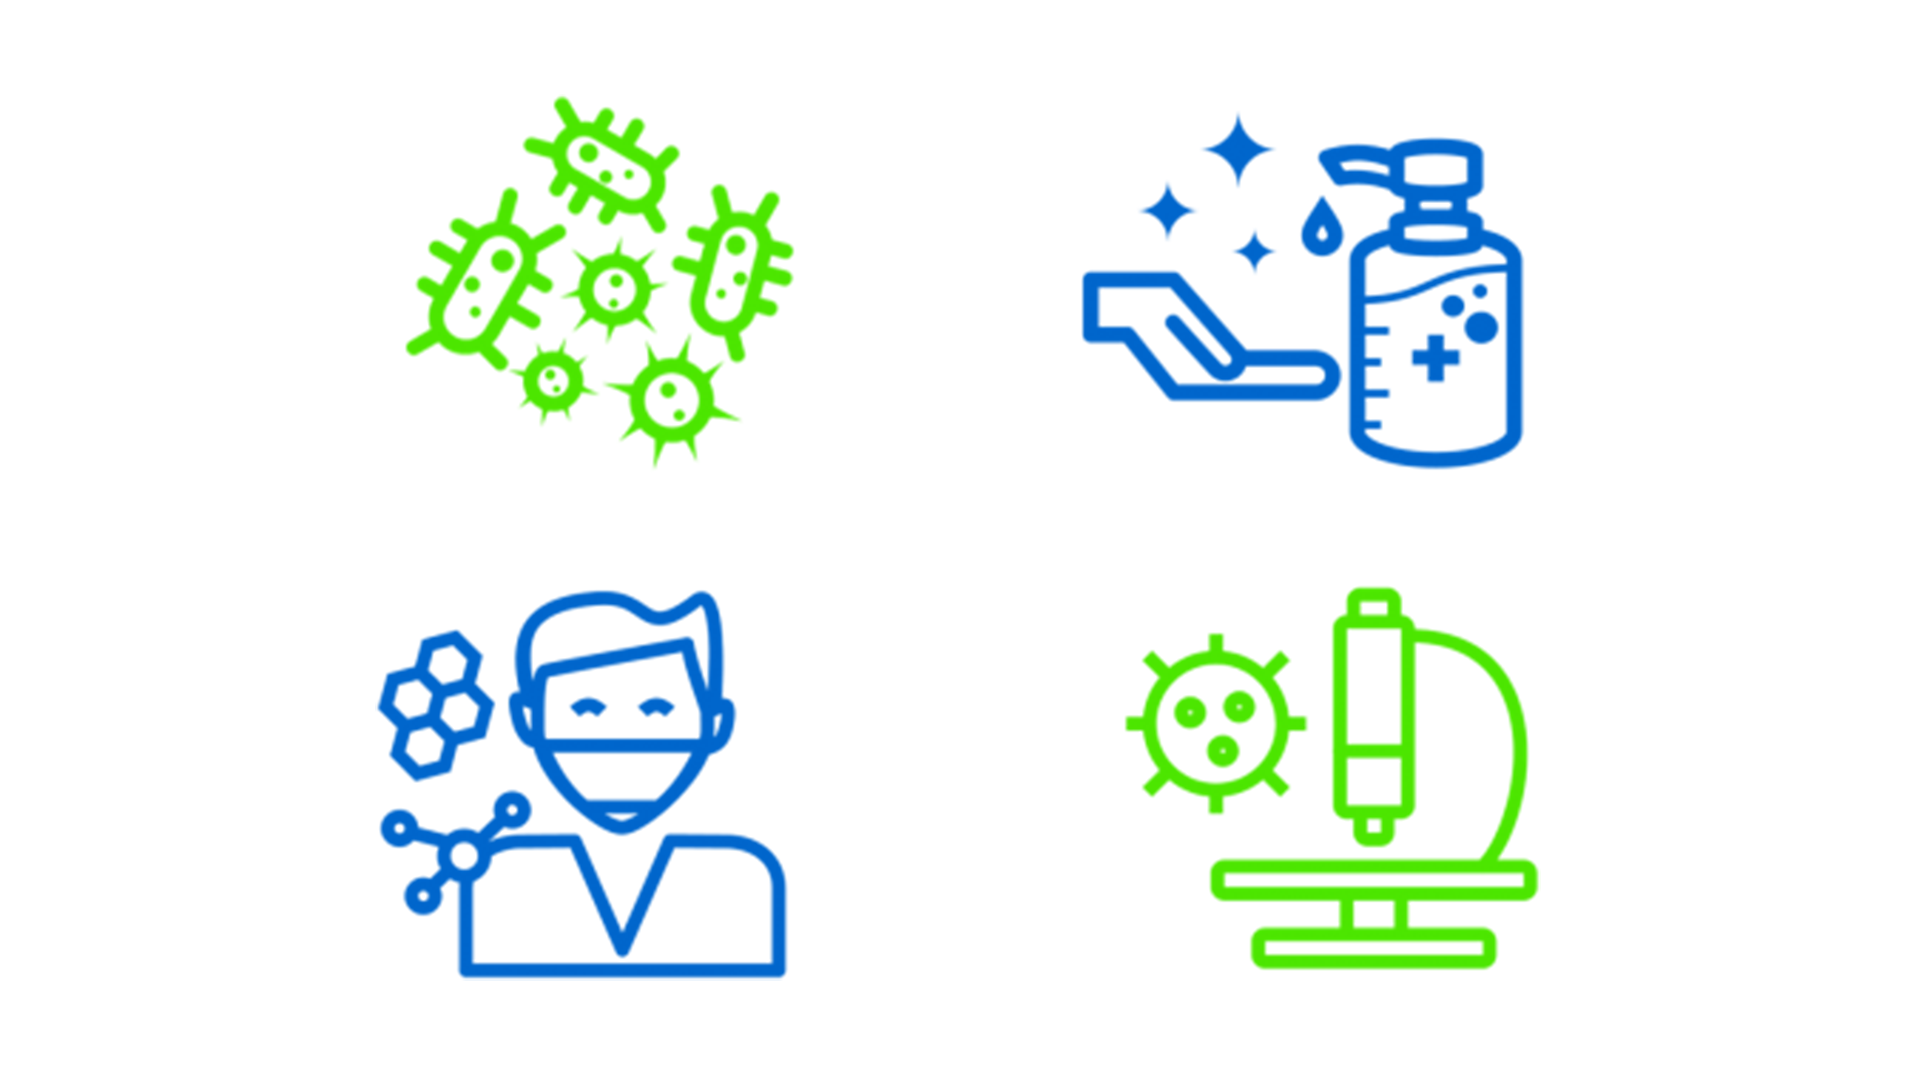 Blue and green line drawings from (top left to bottom right): green bacteria, blue hand sanitizer, blue person wearing a mask, green microscope